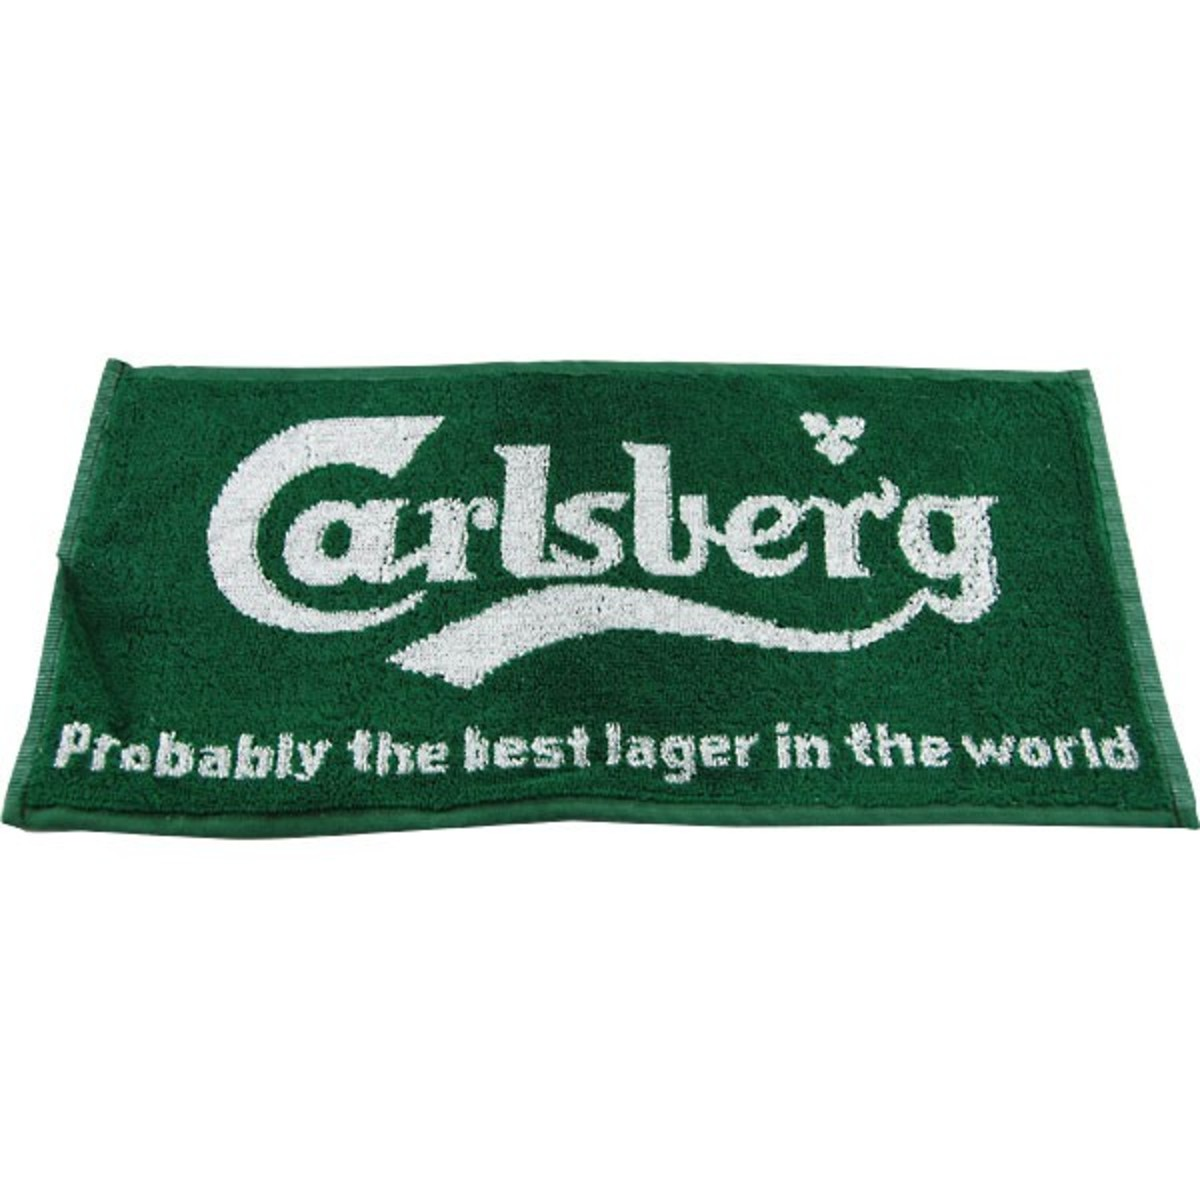 Carlsberg also brew traditional lower strength beers.